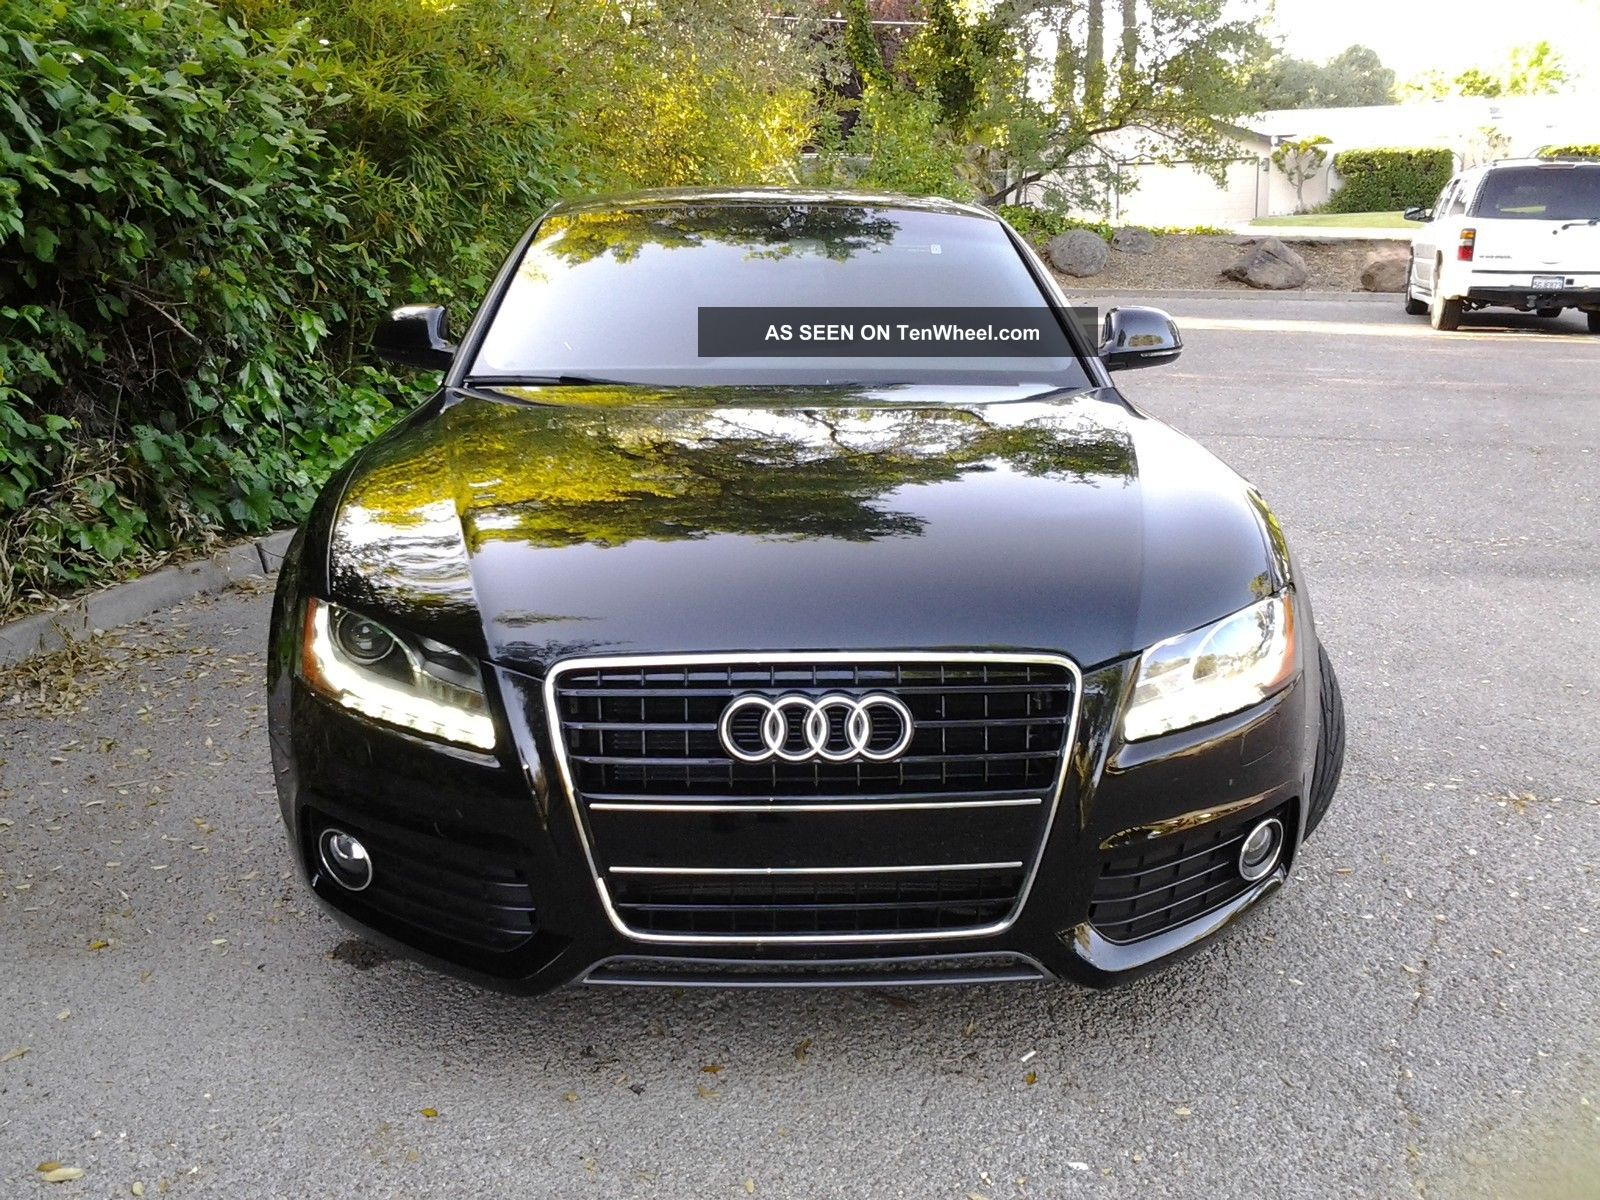 2009 audi a5 quattro s line coupe 2 door 3 2l black. Black Bedroom Furniture Sets. Home Design Ideas